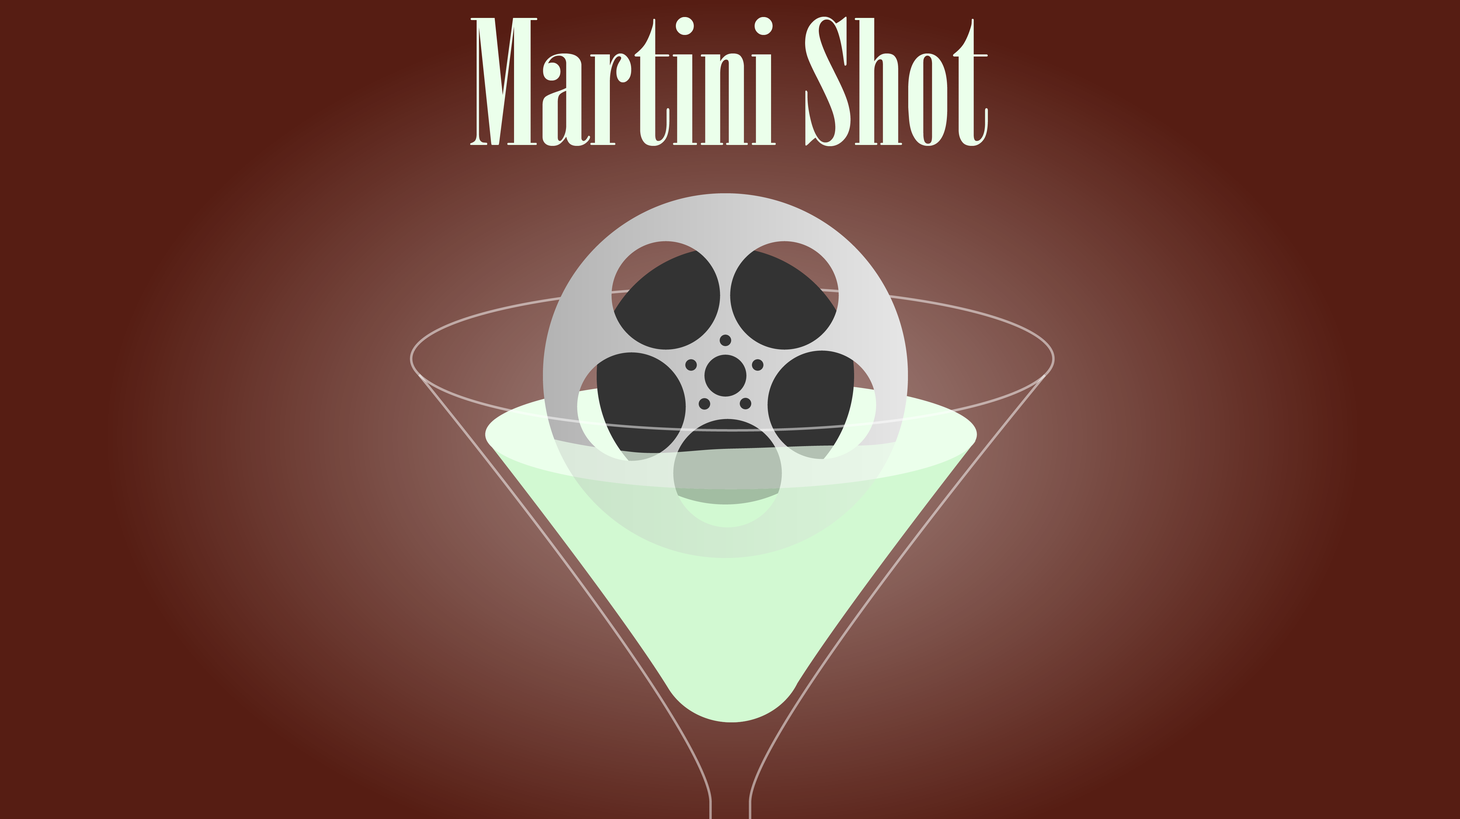 This is Rob Long and on today's Martini Shot I talk about the rule of skinny dipping — you don't want to be the first one to strip down and jump in the pool. You want to be fourth or fifth. Depending on the attractiveness of the crowd.